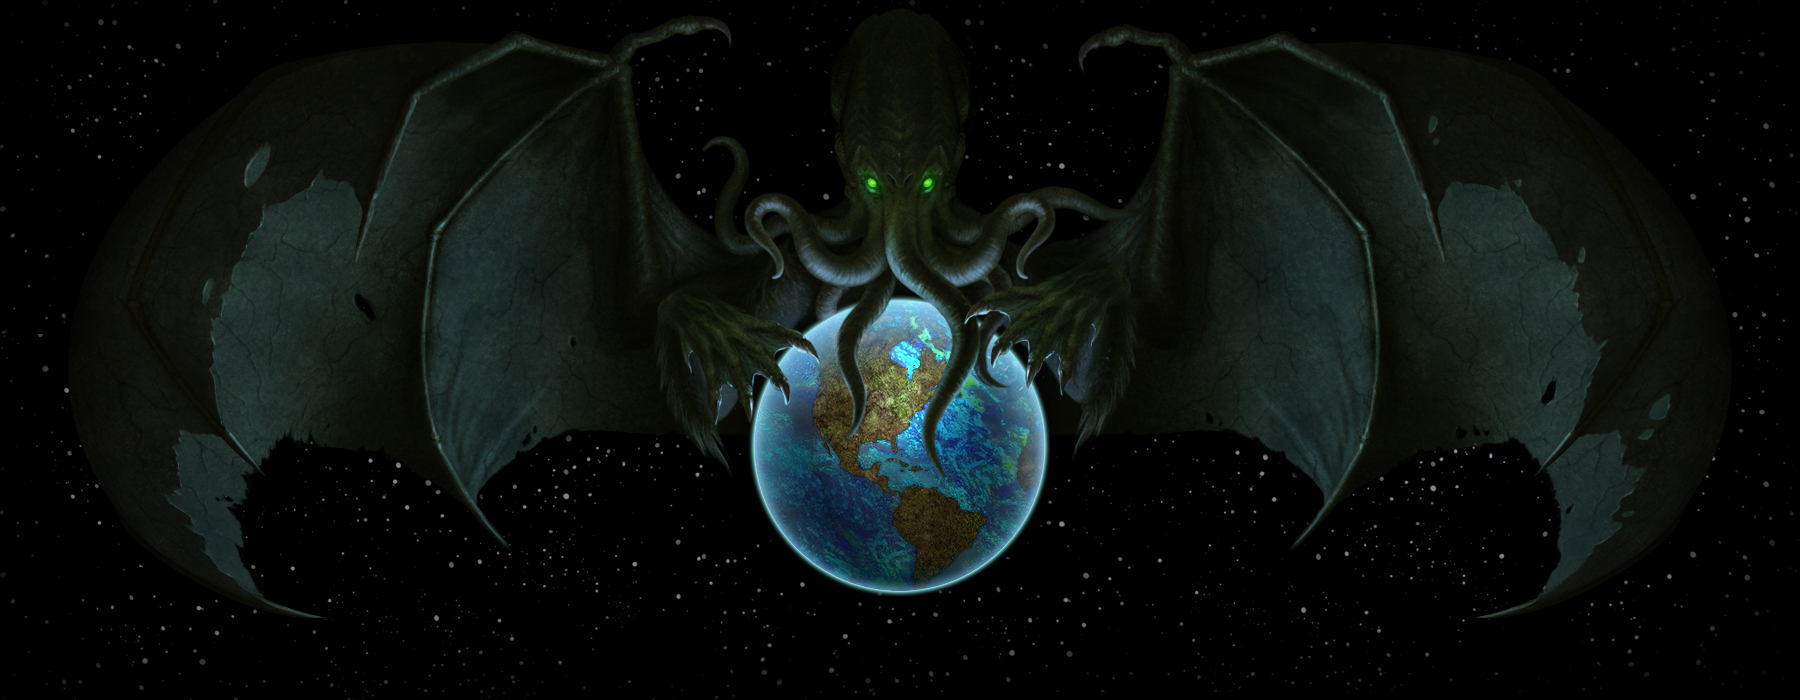 Cthulhu Website Header